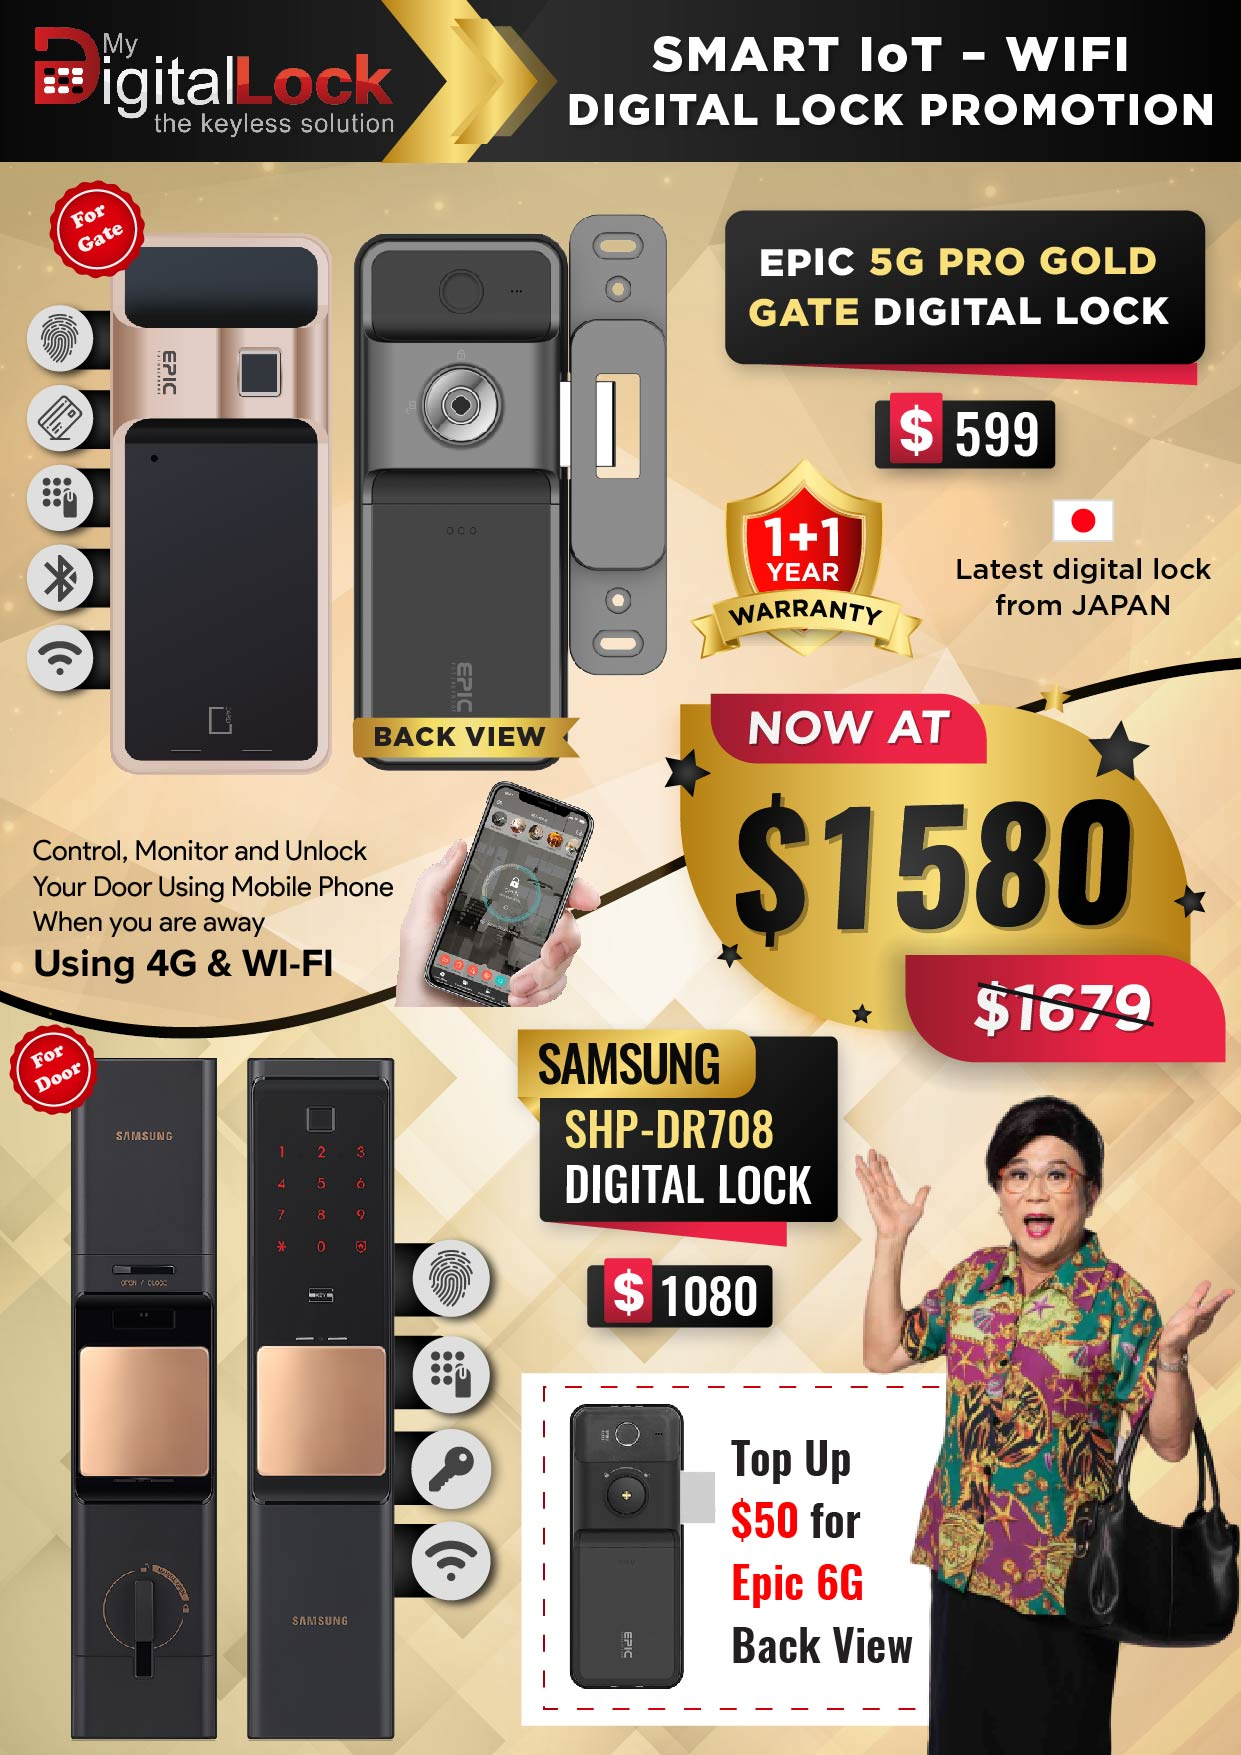 EPIC-5G-PRO-Gold-Gate-and-Samsung-SHP-DR708-Door-Digital-Lock-Promotions